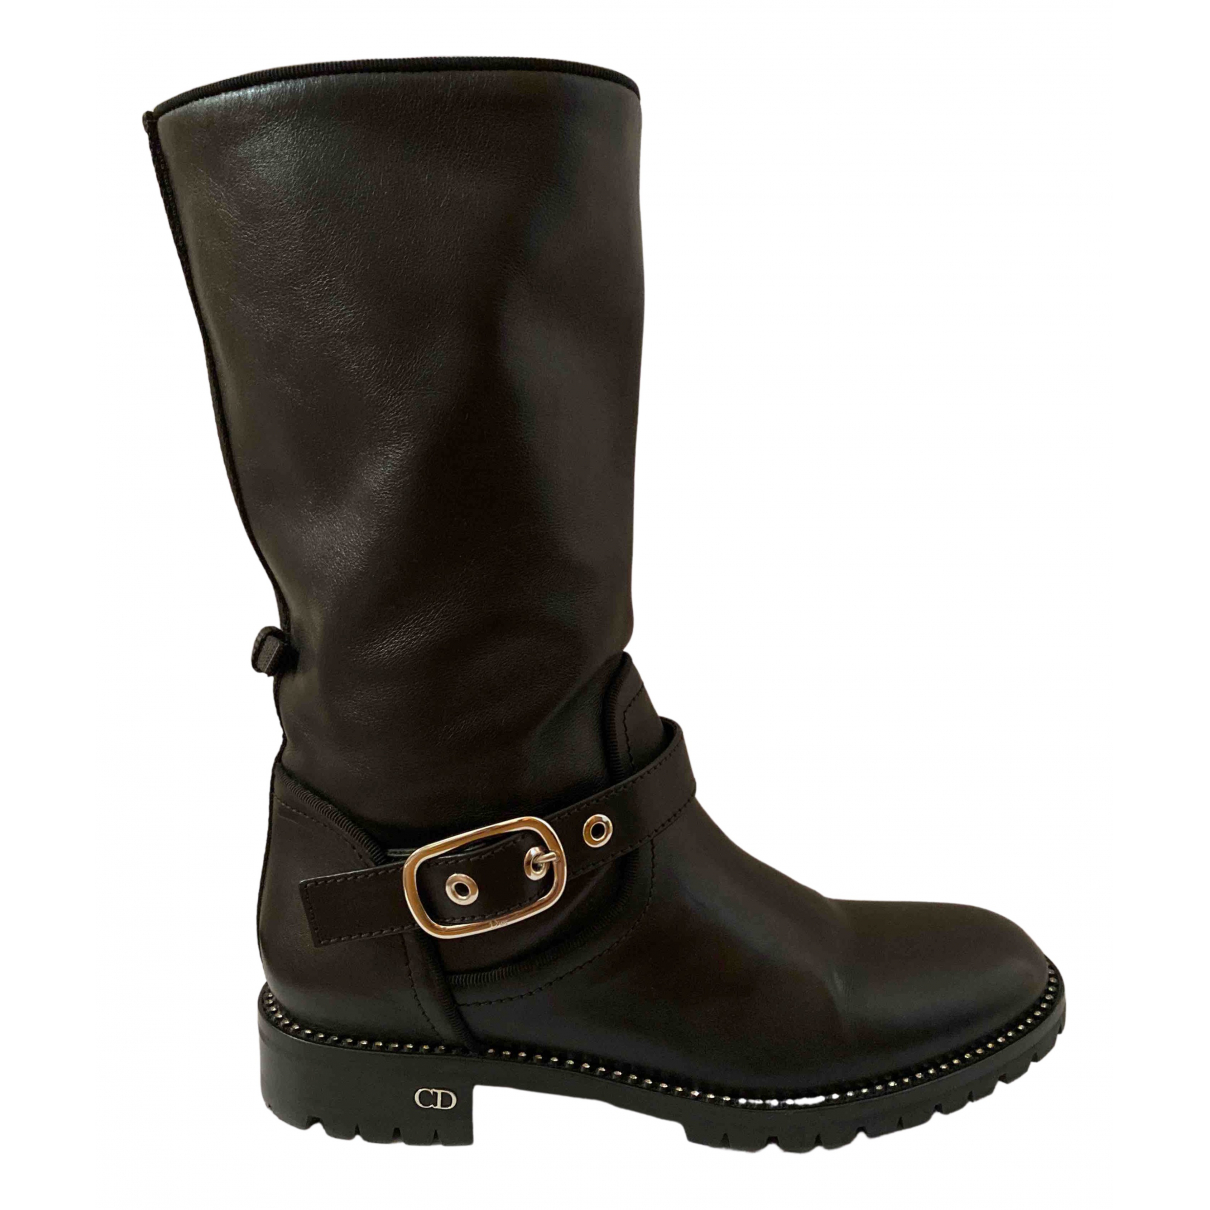 Dior N Black Leather Boots for Women 38 EU